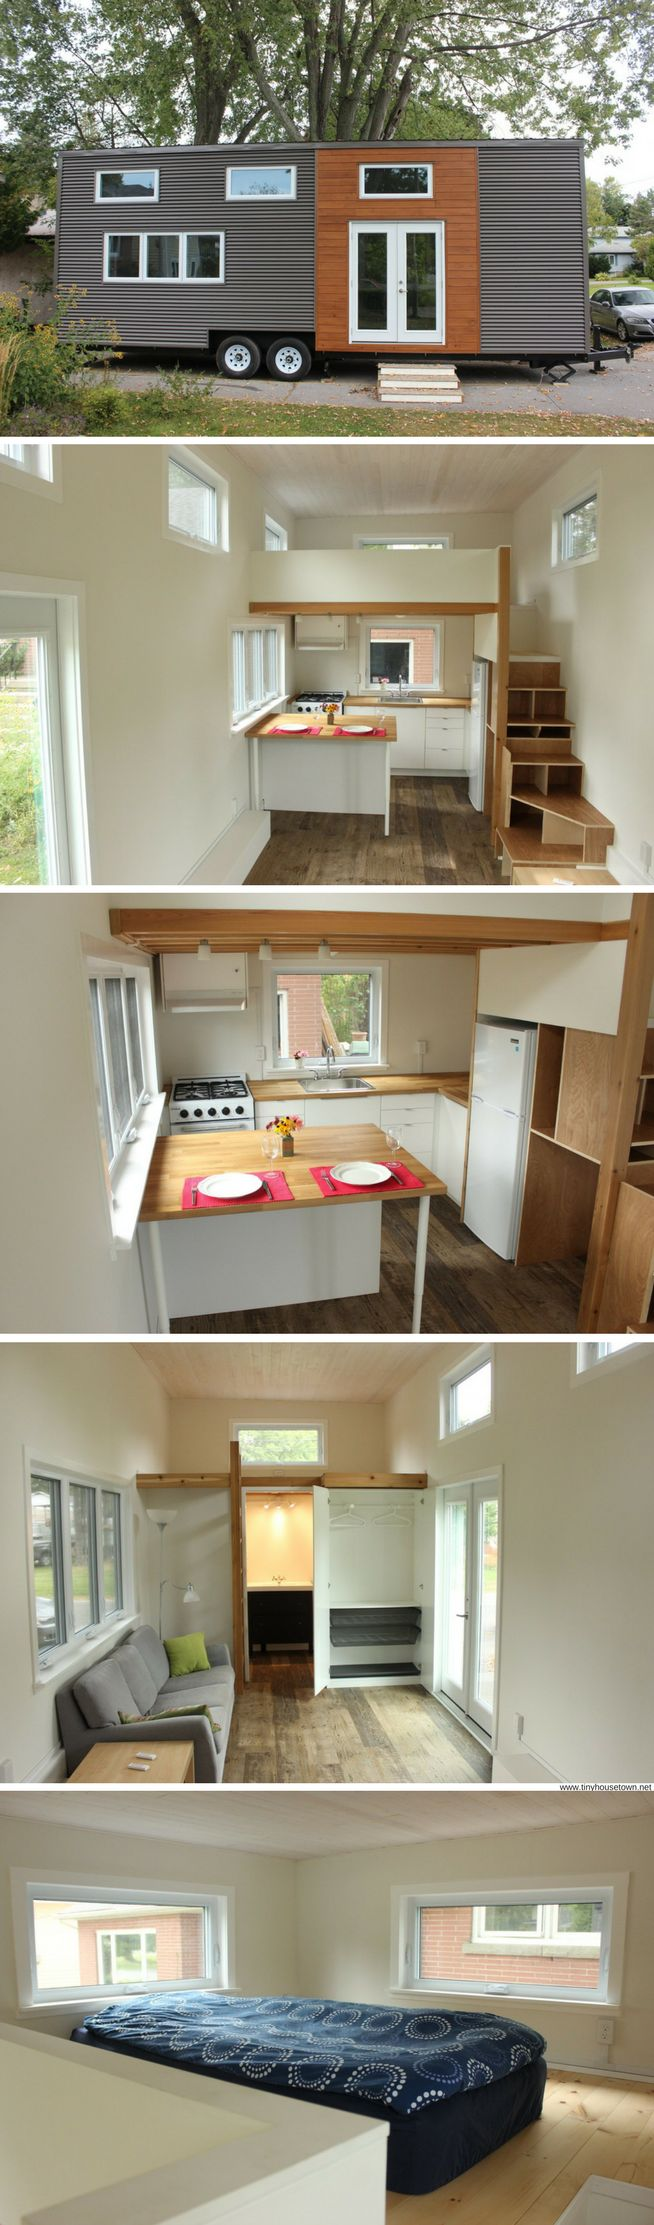 A 390 sq ft contemporary tiny home available for sale in Kingston, Ontario